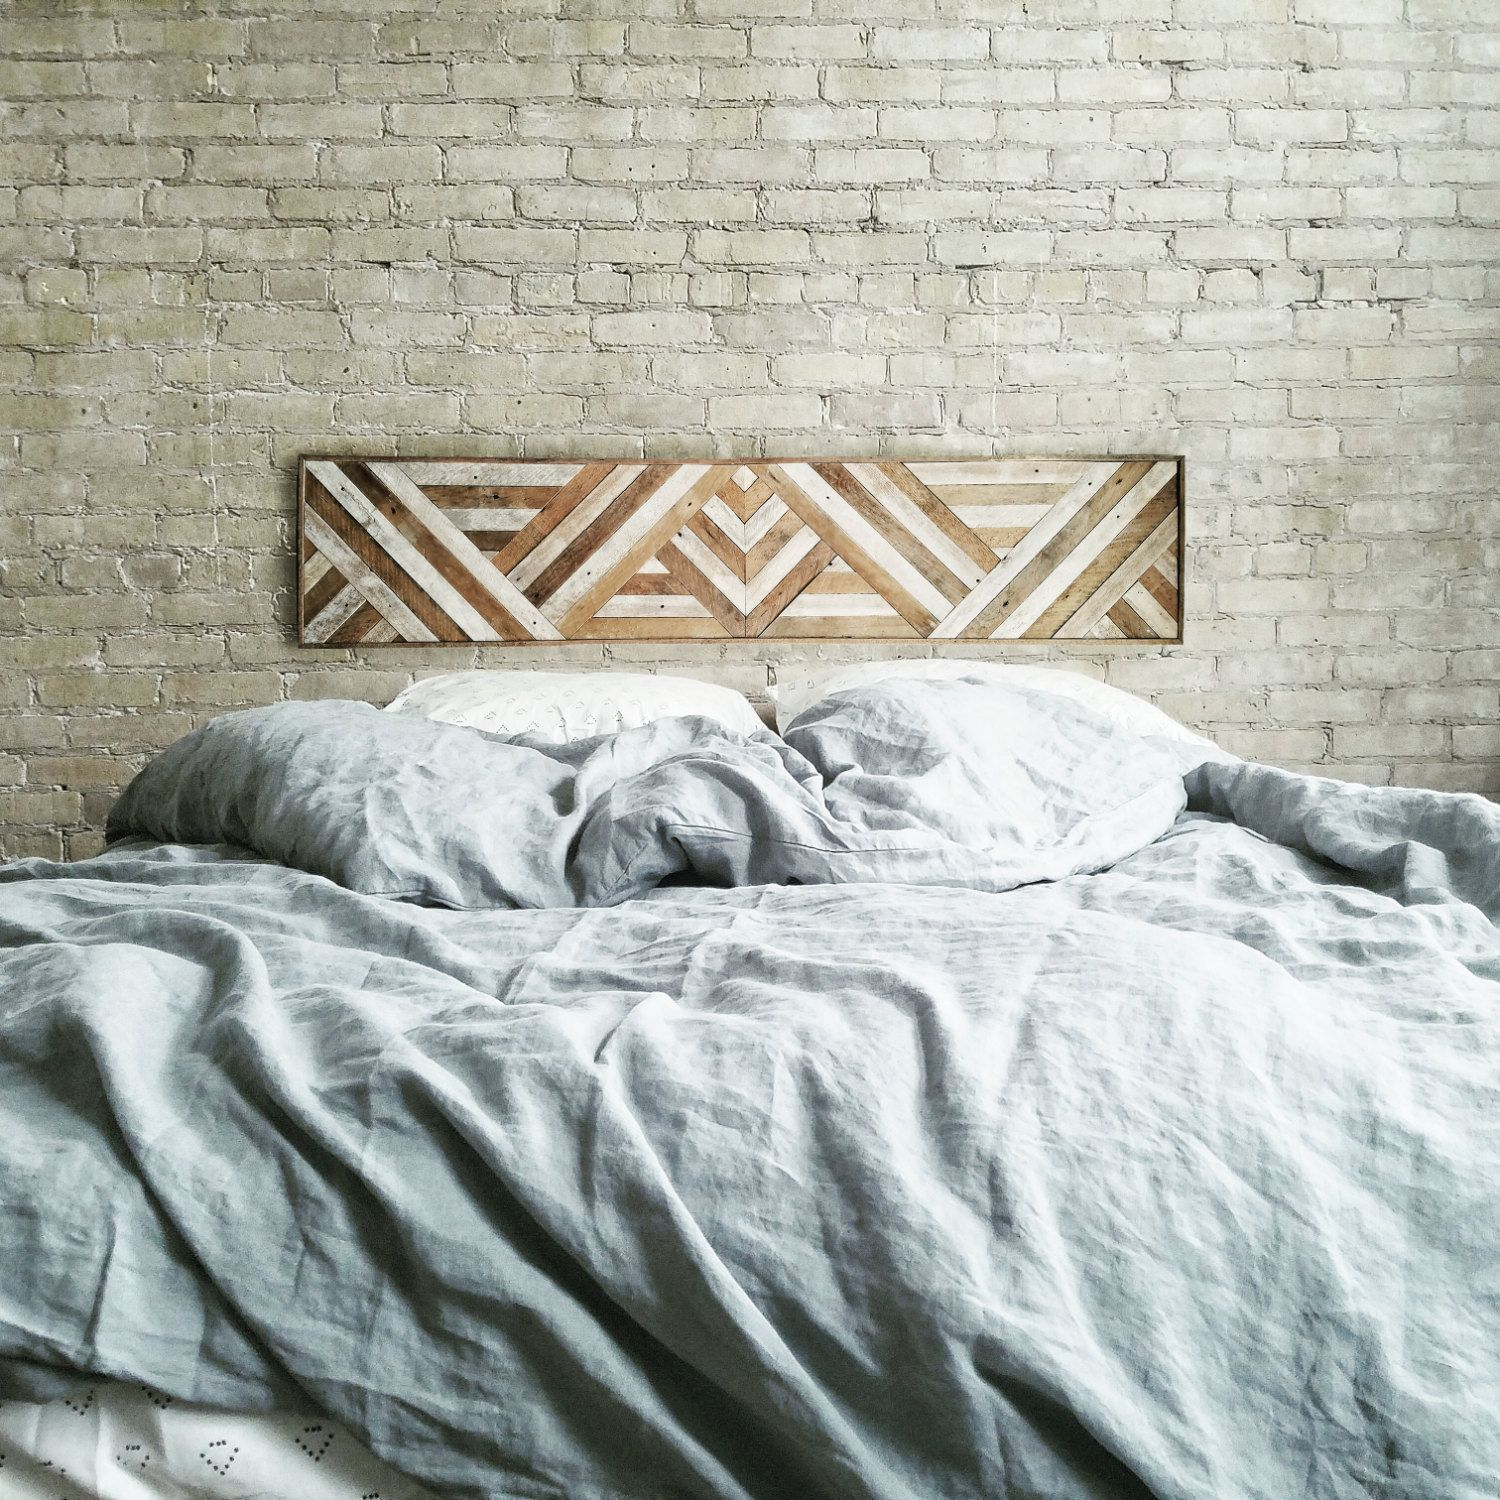 Reclaimed Wood Wall Art, Queen Headboard, Wood Wall Decor, Geometric  Triangle Pattern, 60